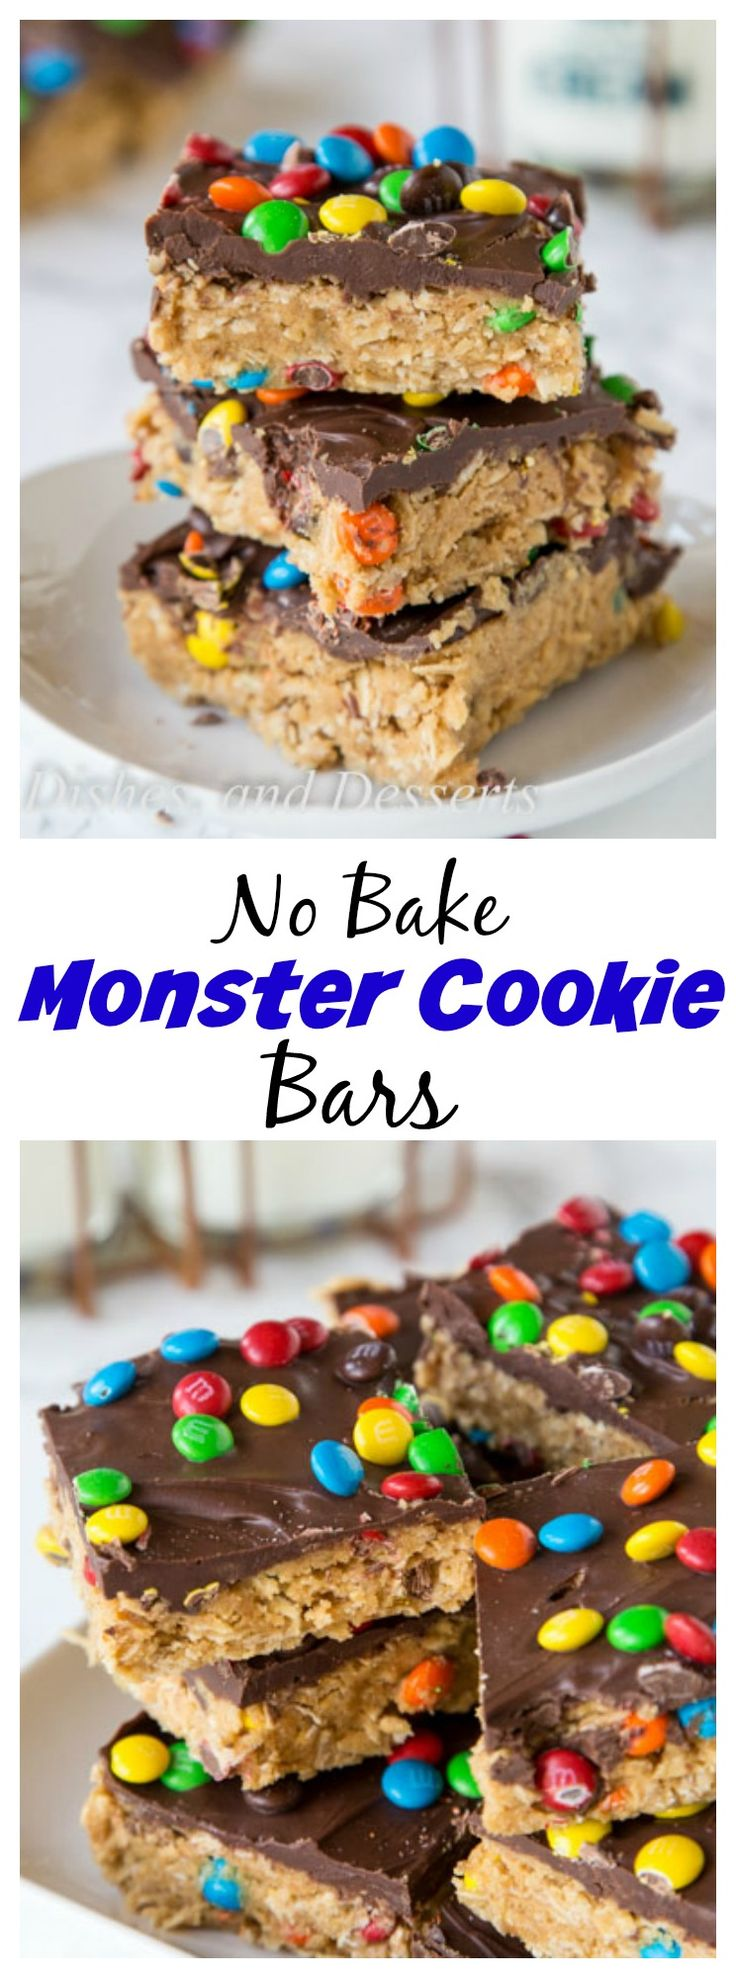 Monster Cookie No Bake Bars – all the flavors of classic monster cookies in a super easy no bake bar recipe.  No heating up the oven to make these!